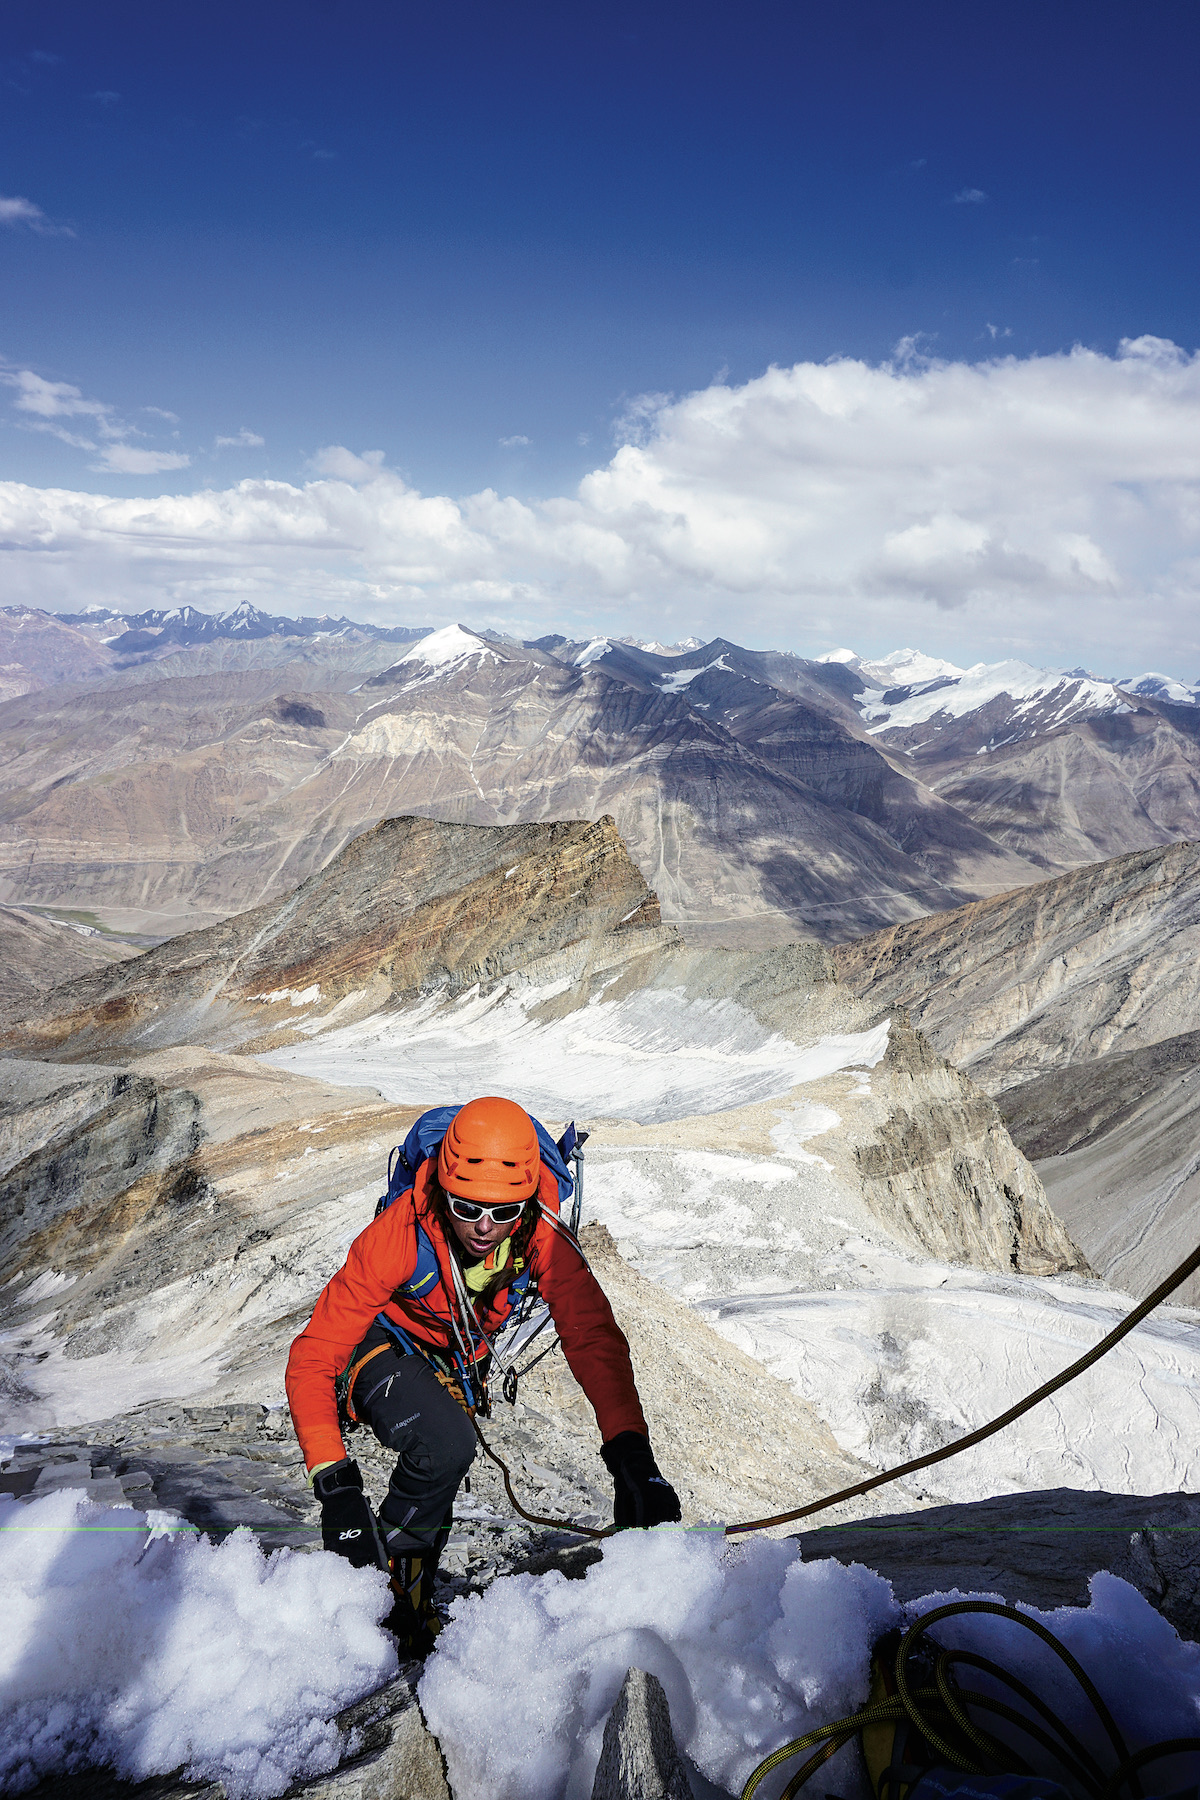 Rachel Spitzer below the summit ridge of Tare Parvat (5577m), Zanskar, India. Spitzer, Lisa Van Sciver and Pfaff named their route Unattached (5.6 WI3 AI4 M4, 600m, 2015). In the 2009 Himalayan Journal, Indian explorer Harish Kapadia described how each bend in the road in Zanskar reveals another unclimbed face. Sip wine at one valley, climb and move on to the next one to open another bottle, he recommended. [Photo] Anna Pfaff